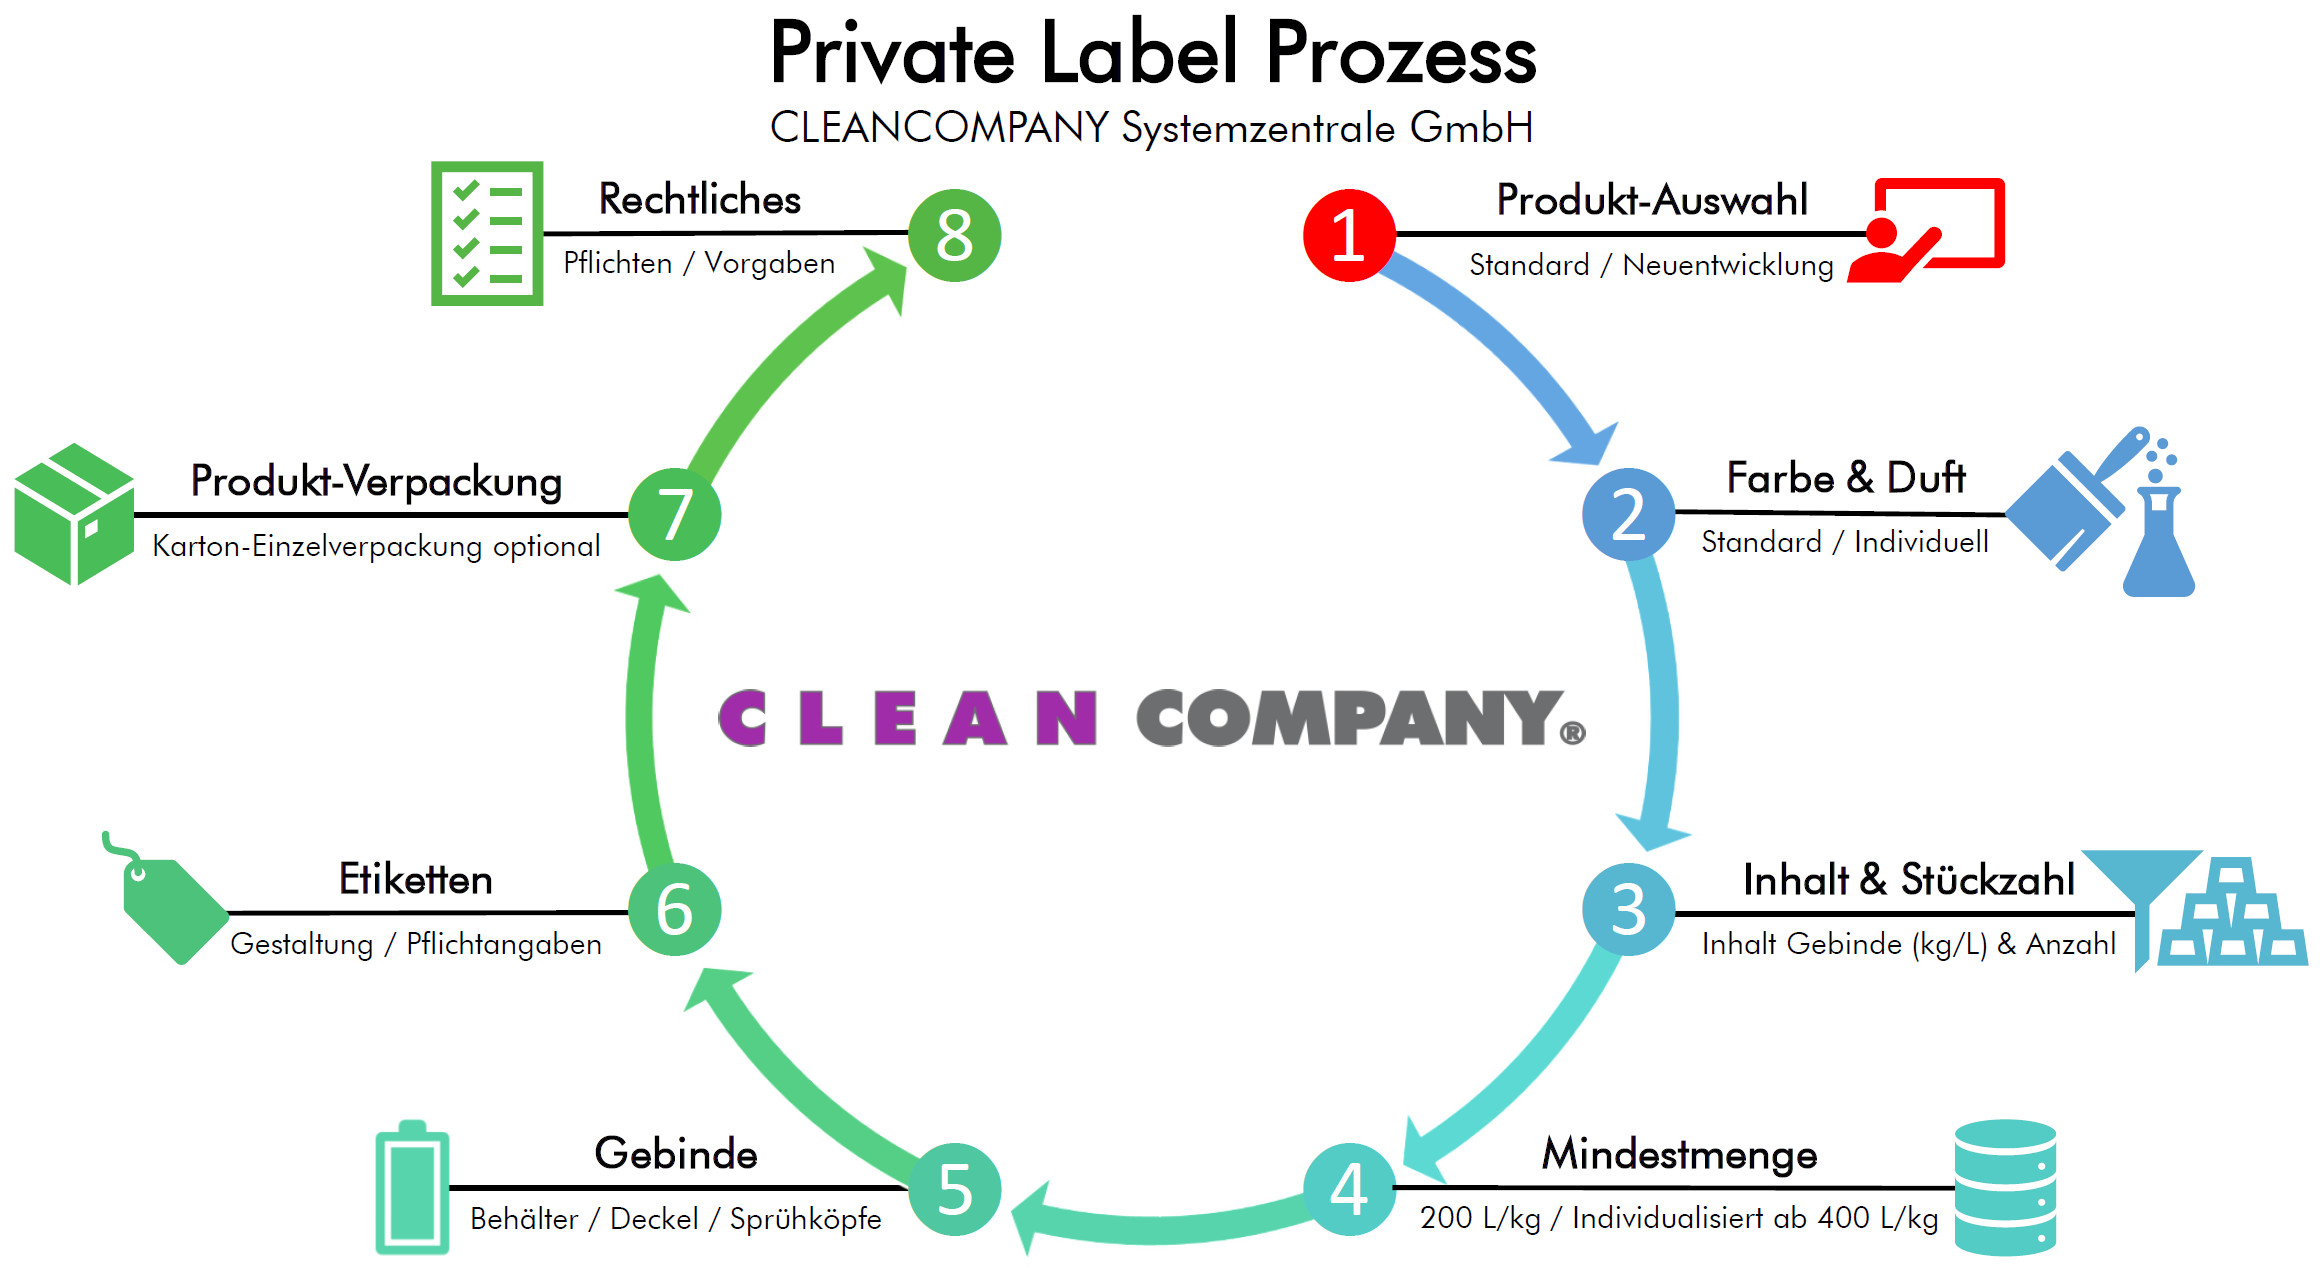 CLEANCOMPANY Private Label